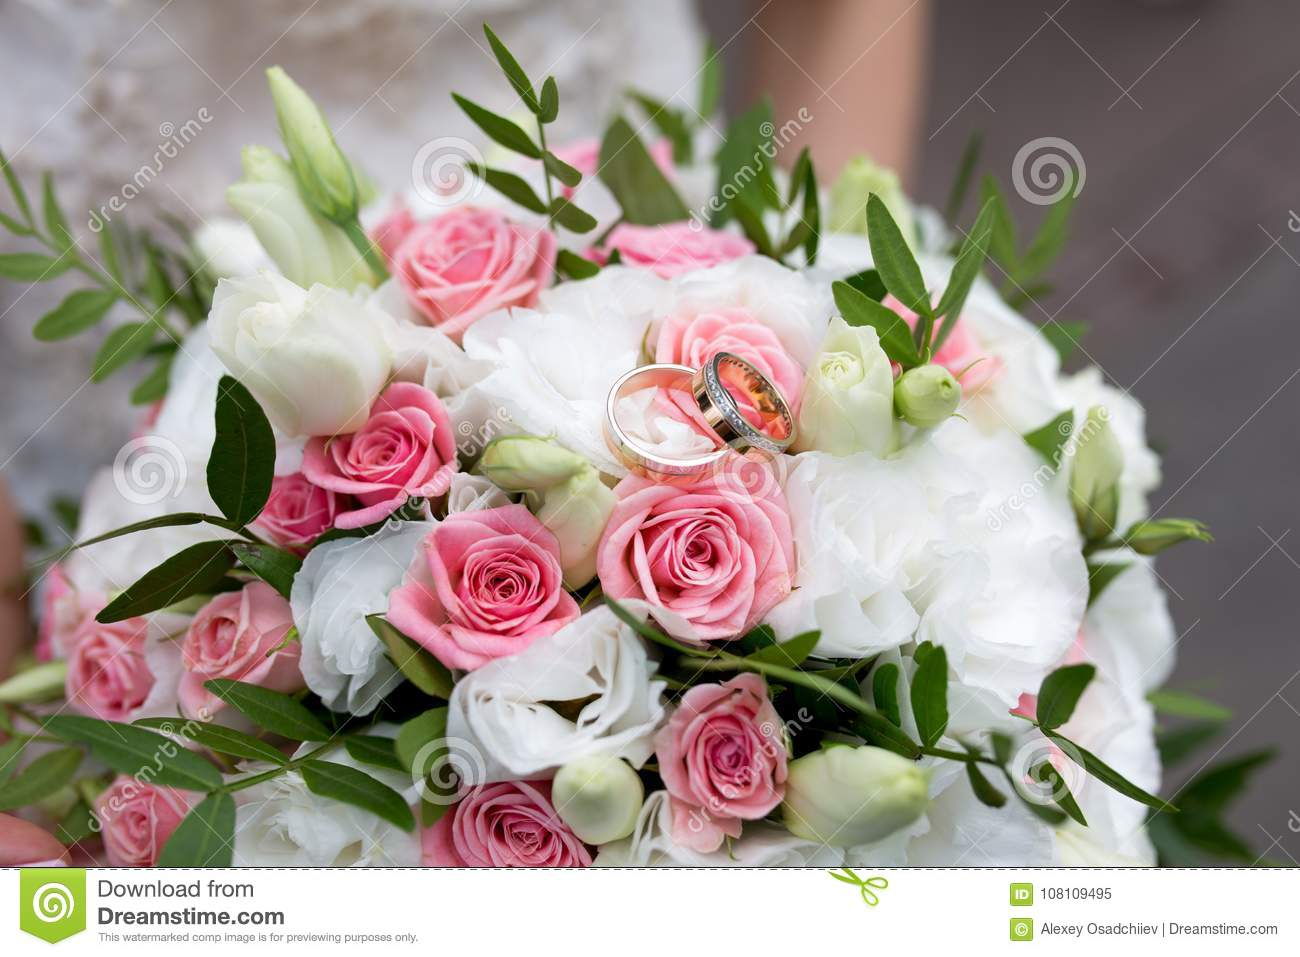 Big flower bouquet stock image image of jewellery honeymoon download big flower bouquet stock image image of jewellery honeymoon 108109495 izmirmasajfo